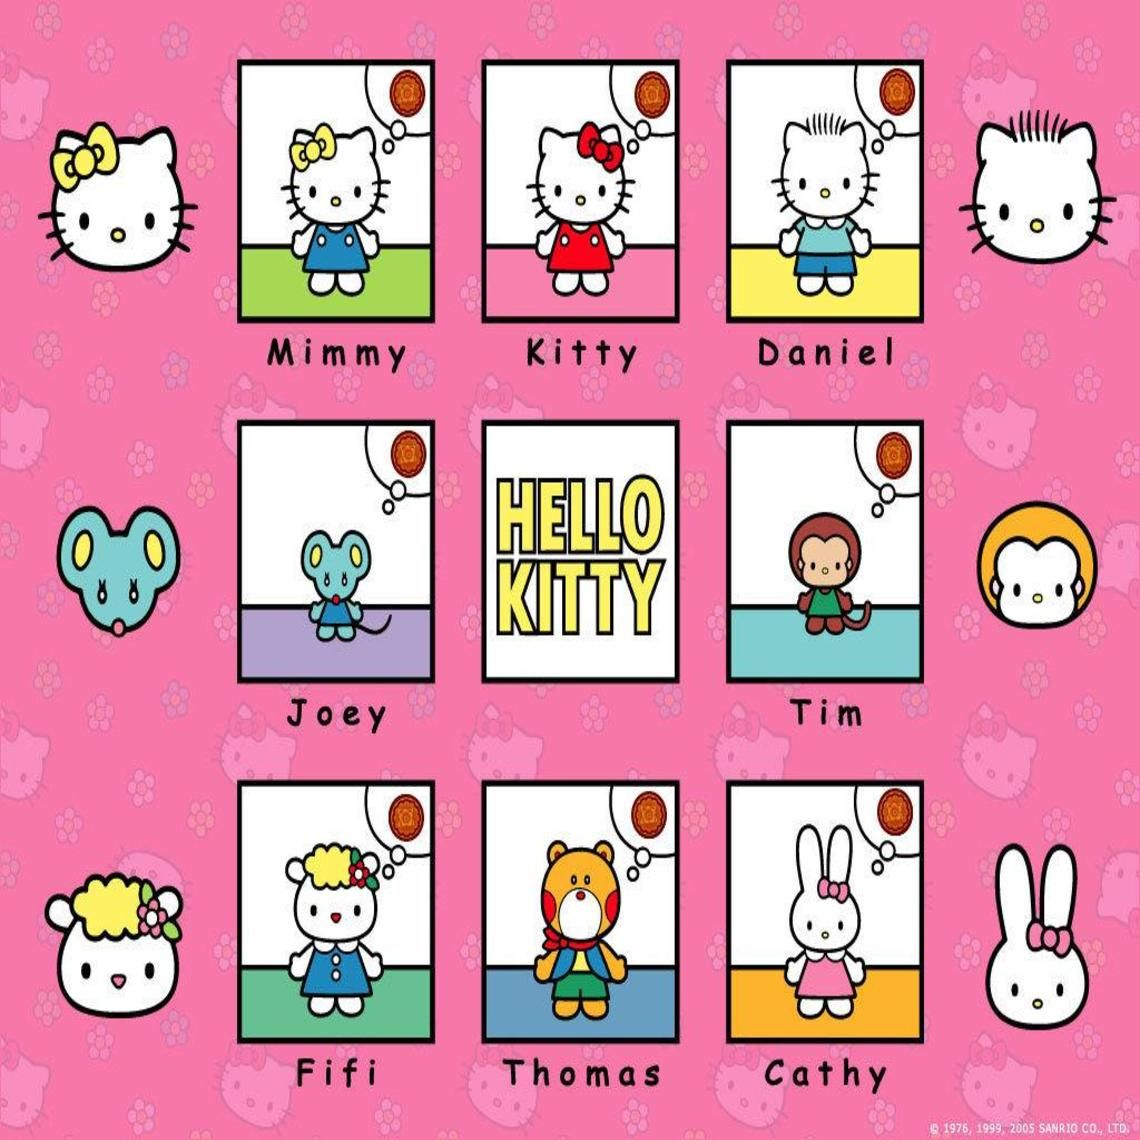 Simple Wallpaper Hello Kitty Friend - 935d122a3bccbd7a7a29541adfa350a8  Pic_92669.jpg